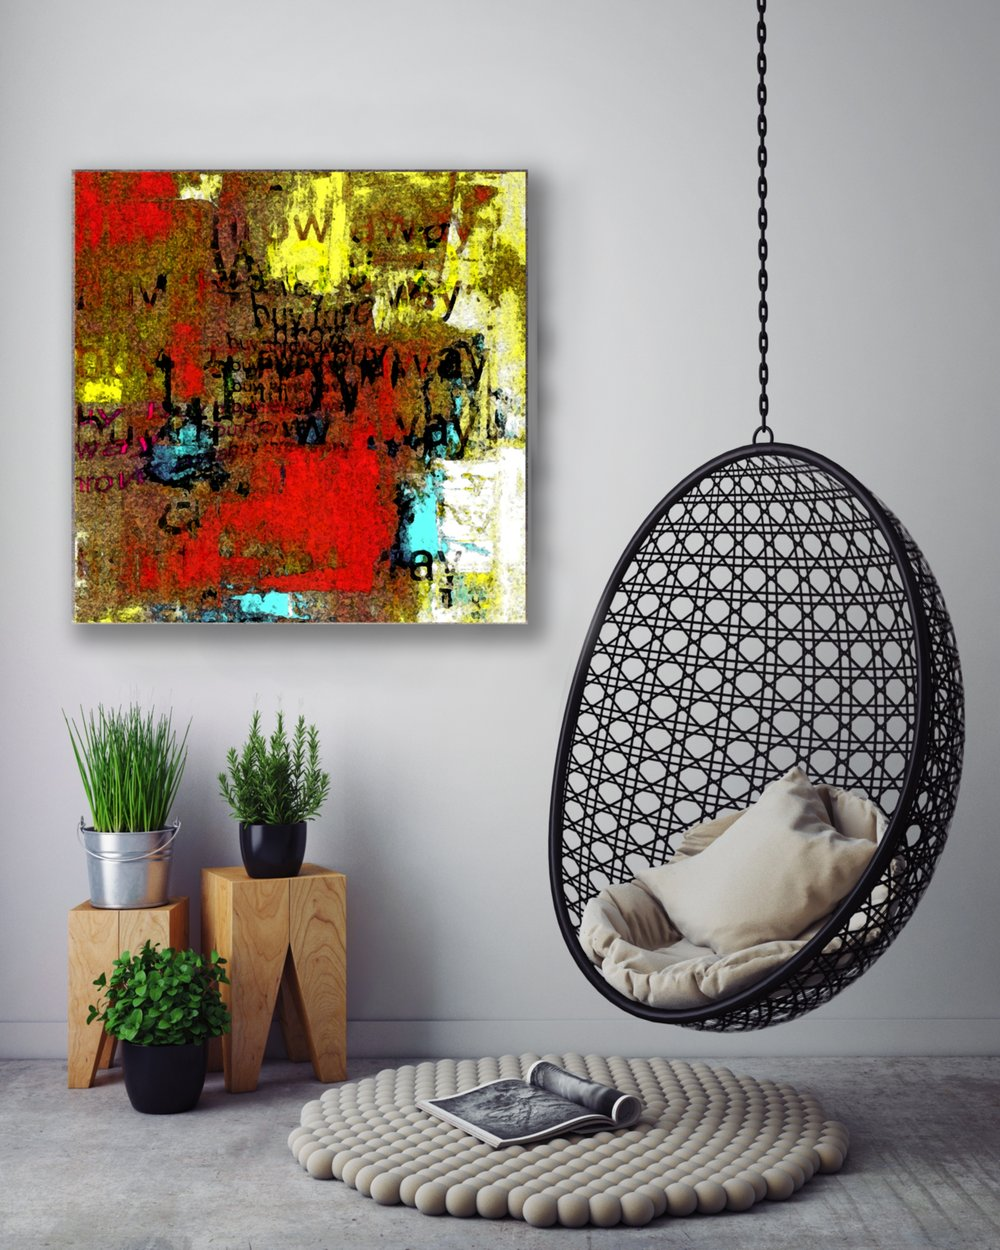 Featured in Creative Space: Buy Throw Away Buy